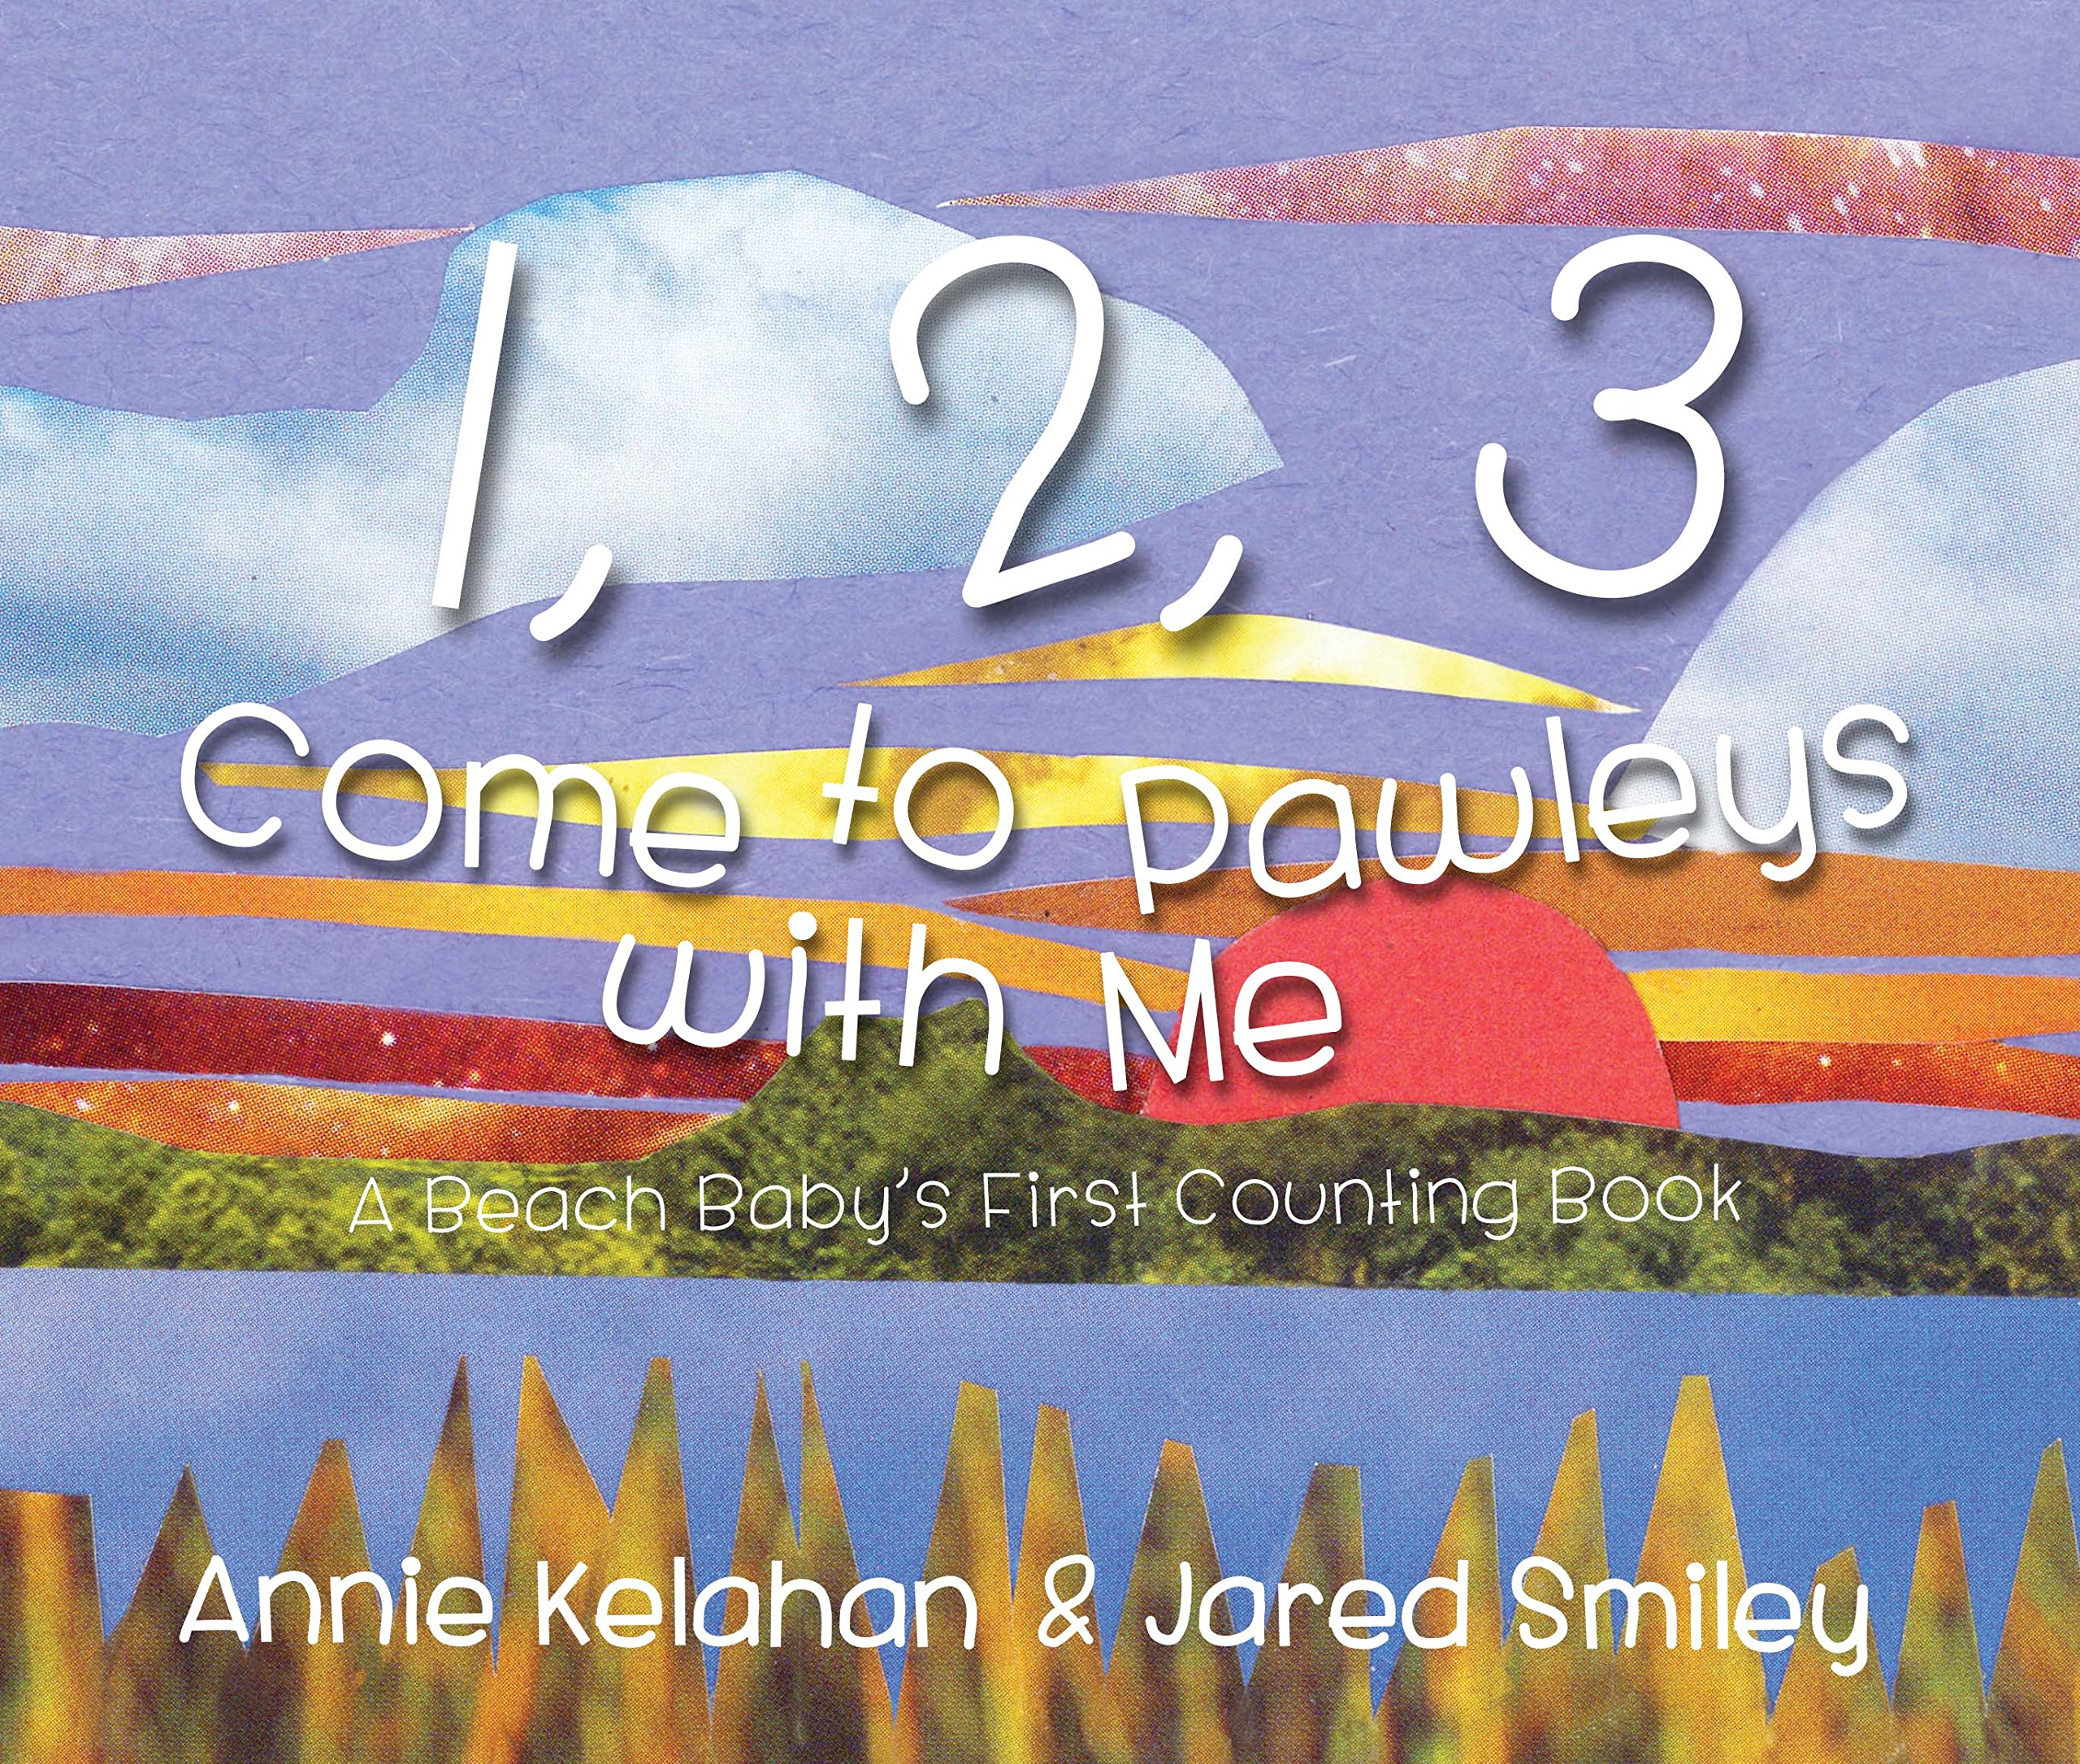 1, 2, 3 Come to Pawleys Island with Me: A Beach Baby's First Counting Book ebook